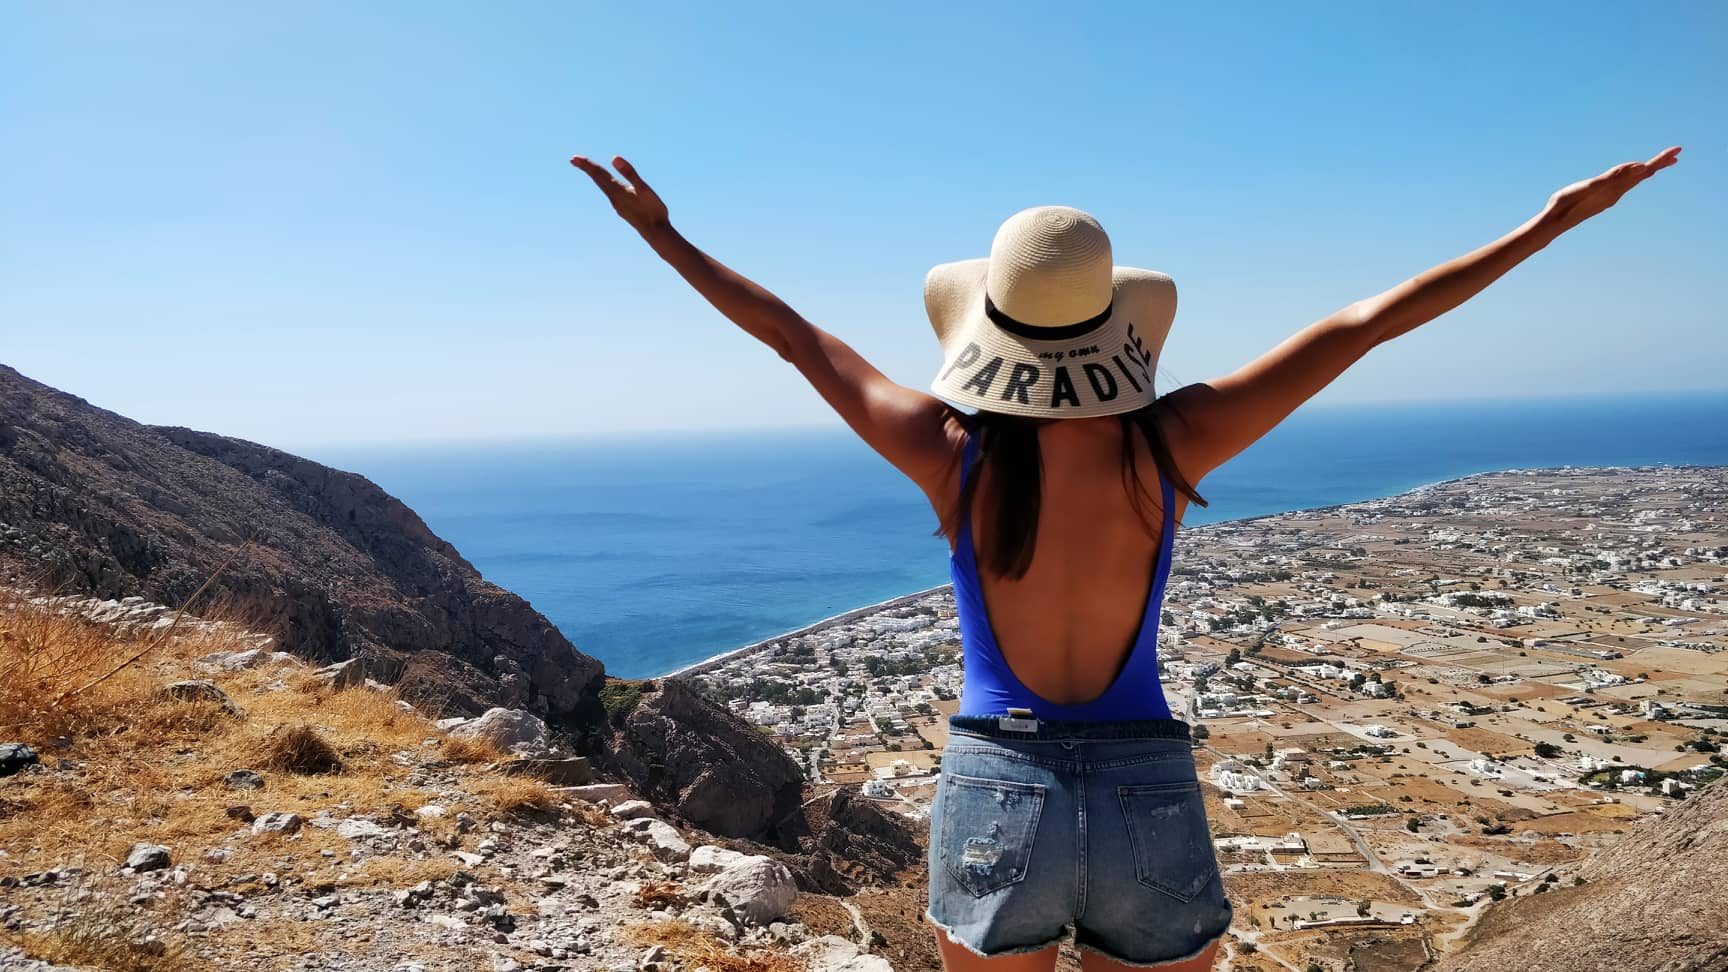 Top destinations for female travellers in 2020